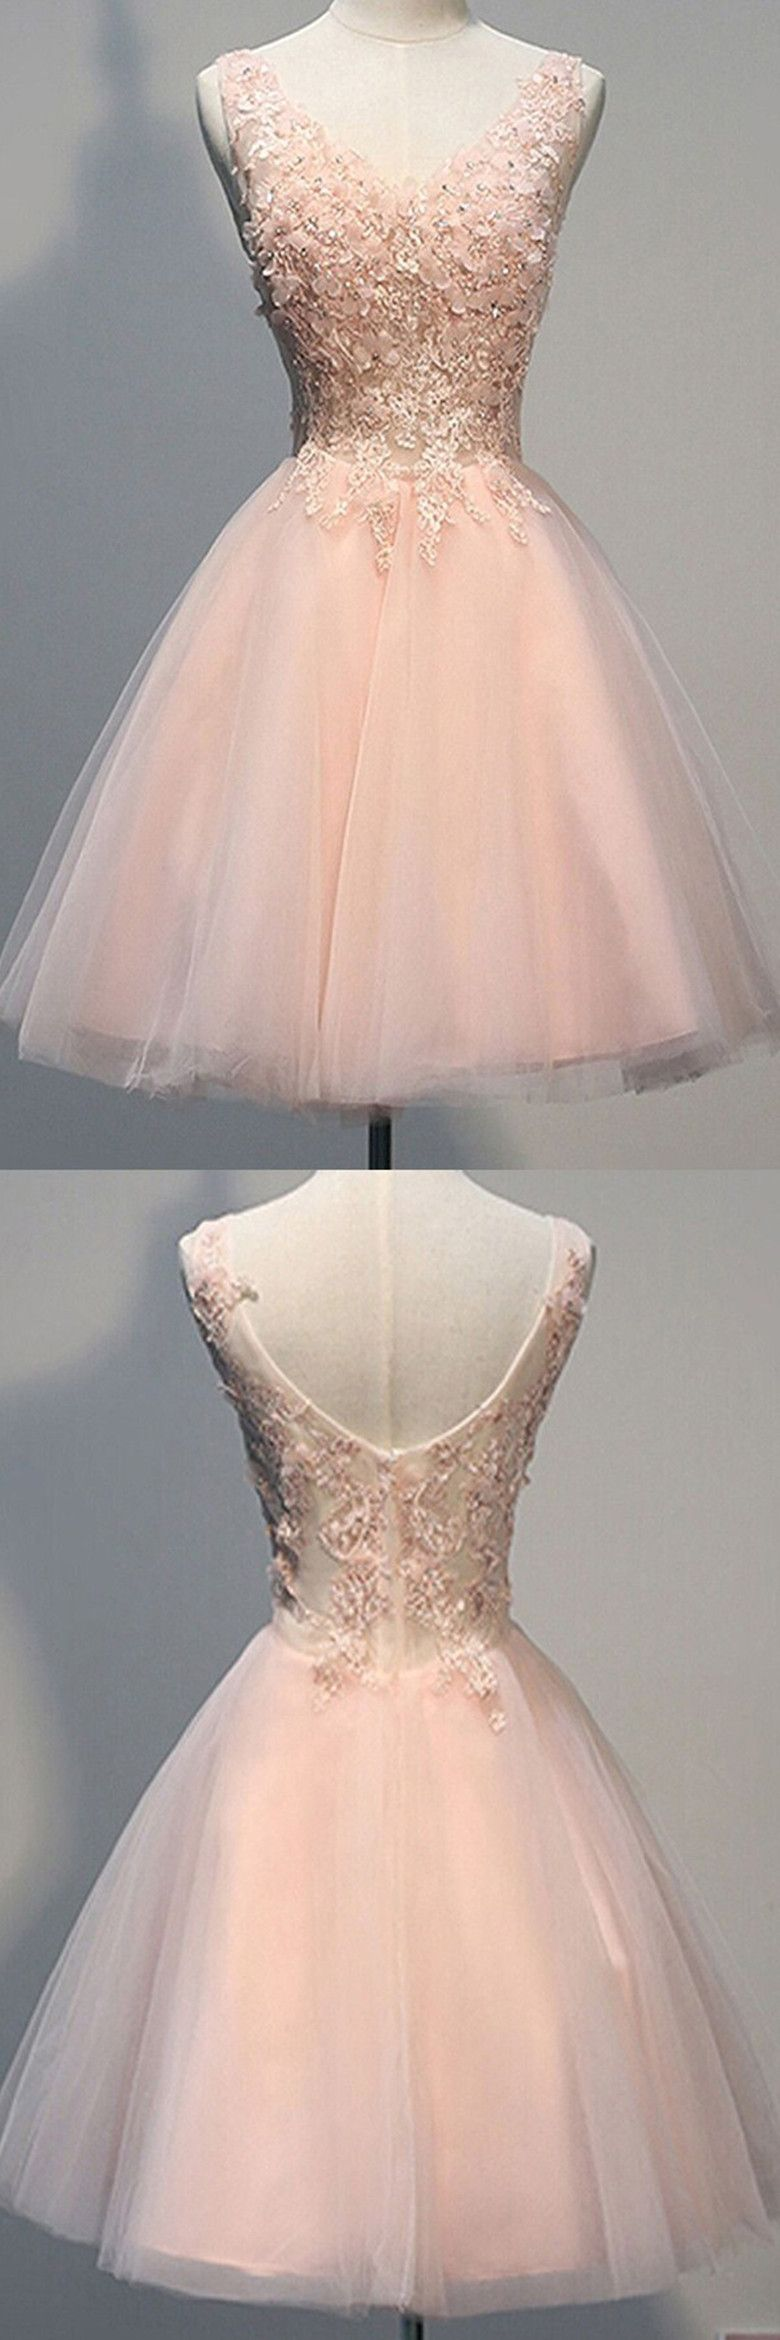 Awesome V-neck Sleeveless Knee-Length Pearl Pink Open Back Homecoming Dress with Appliques #backlesscocktaildress